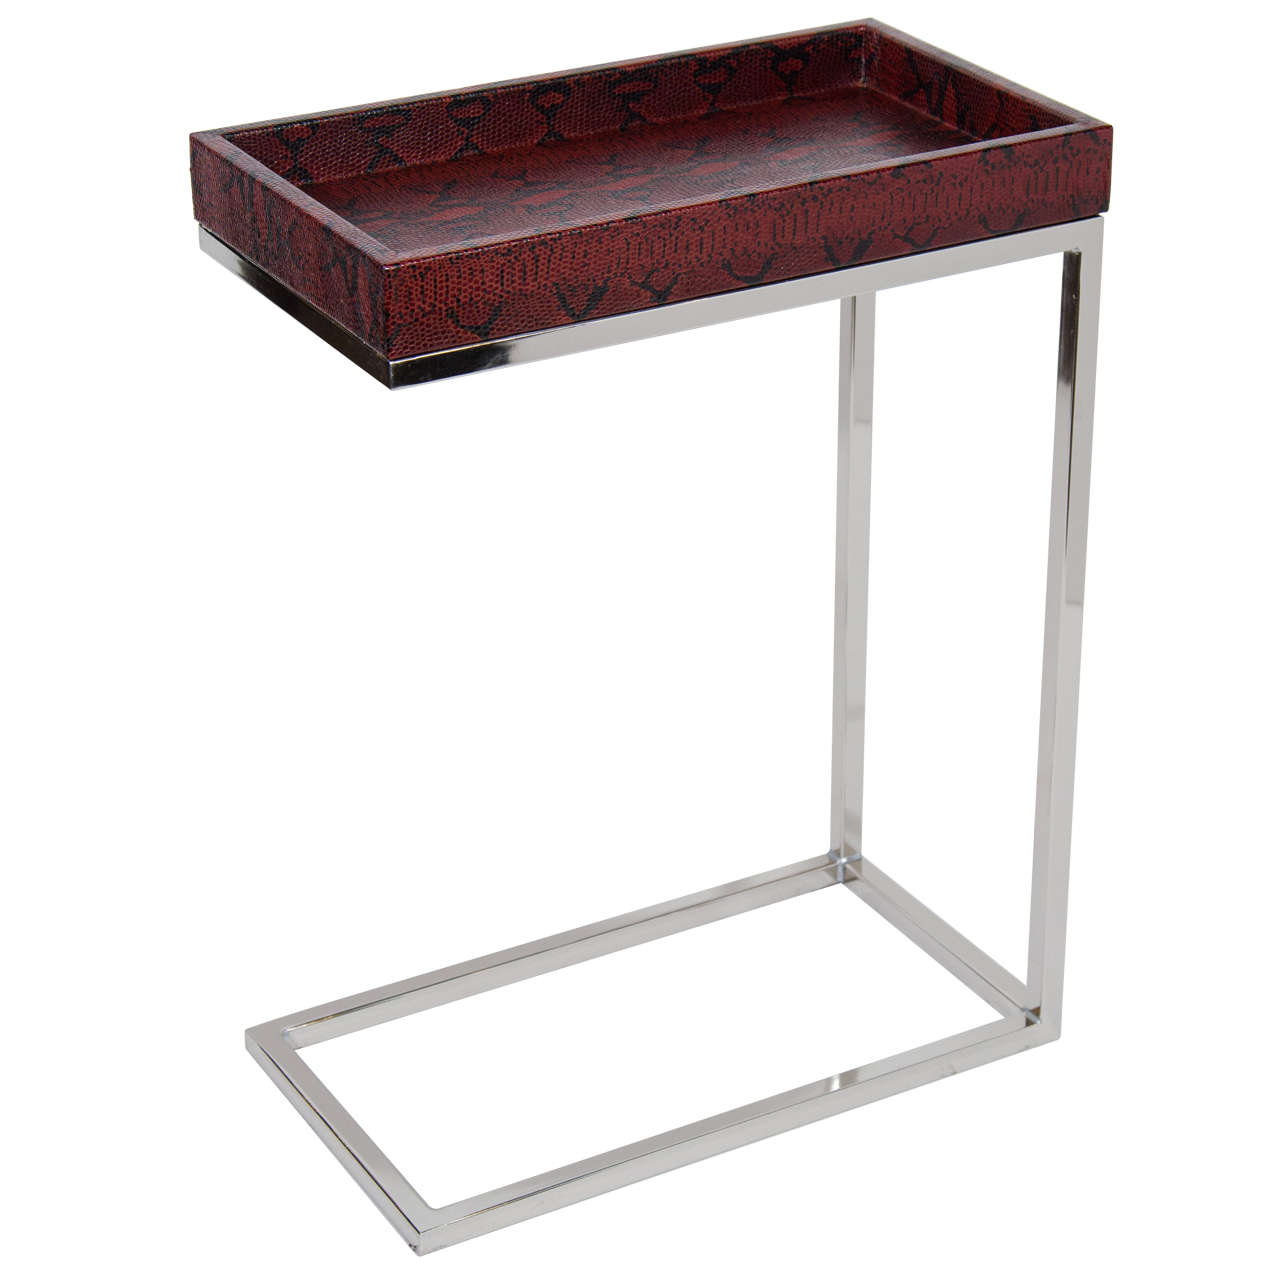 Karl Springer Style Narrow Side Table In Python Embossed Garnet Leather 1